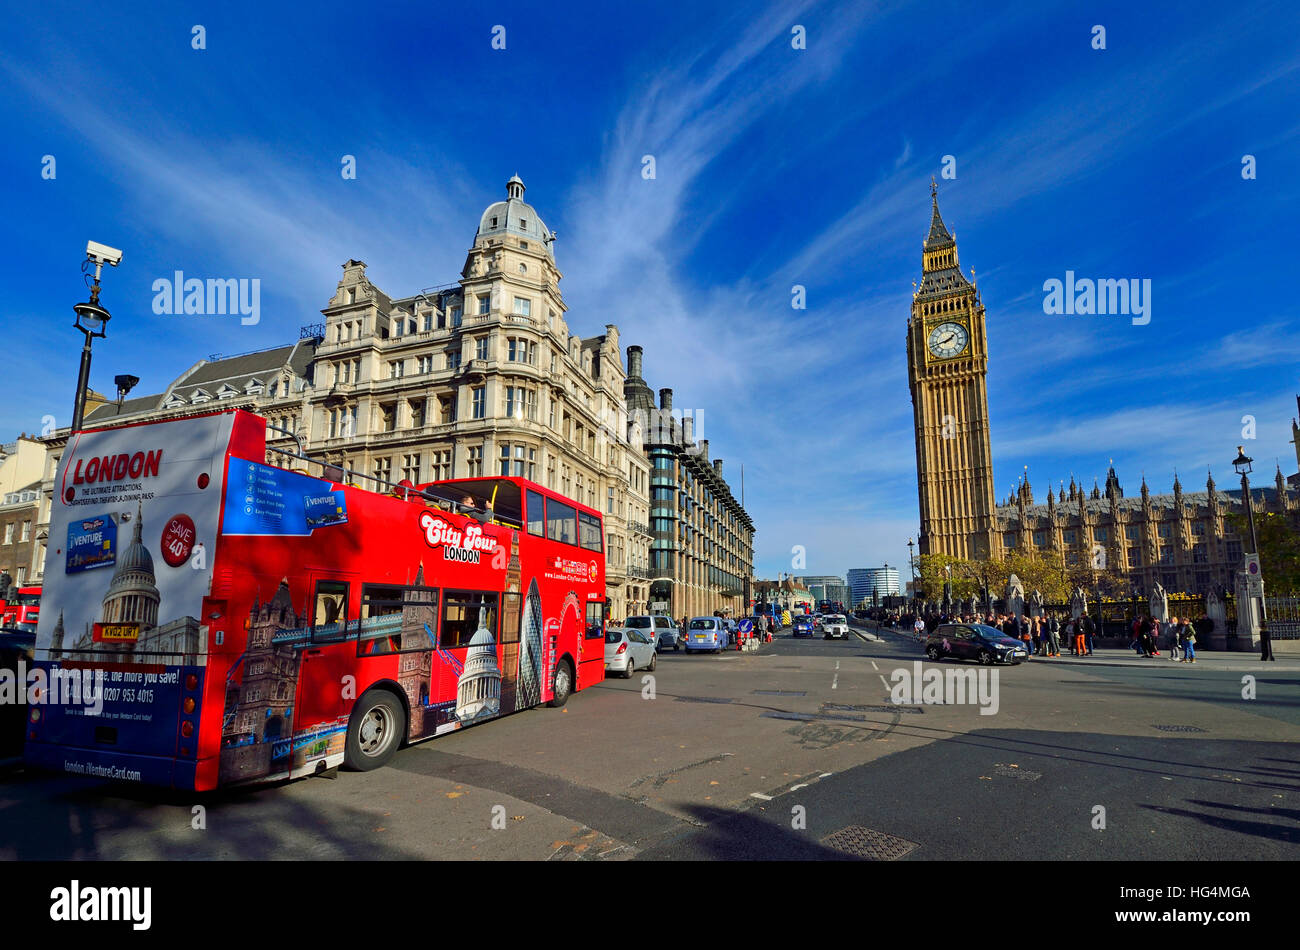 London, England, UK. Double-decker tourist sightseeing bus in Parliament Square - Stock Image